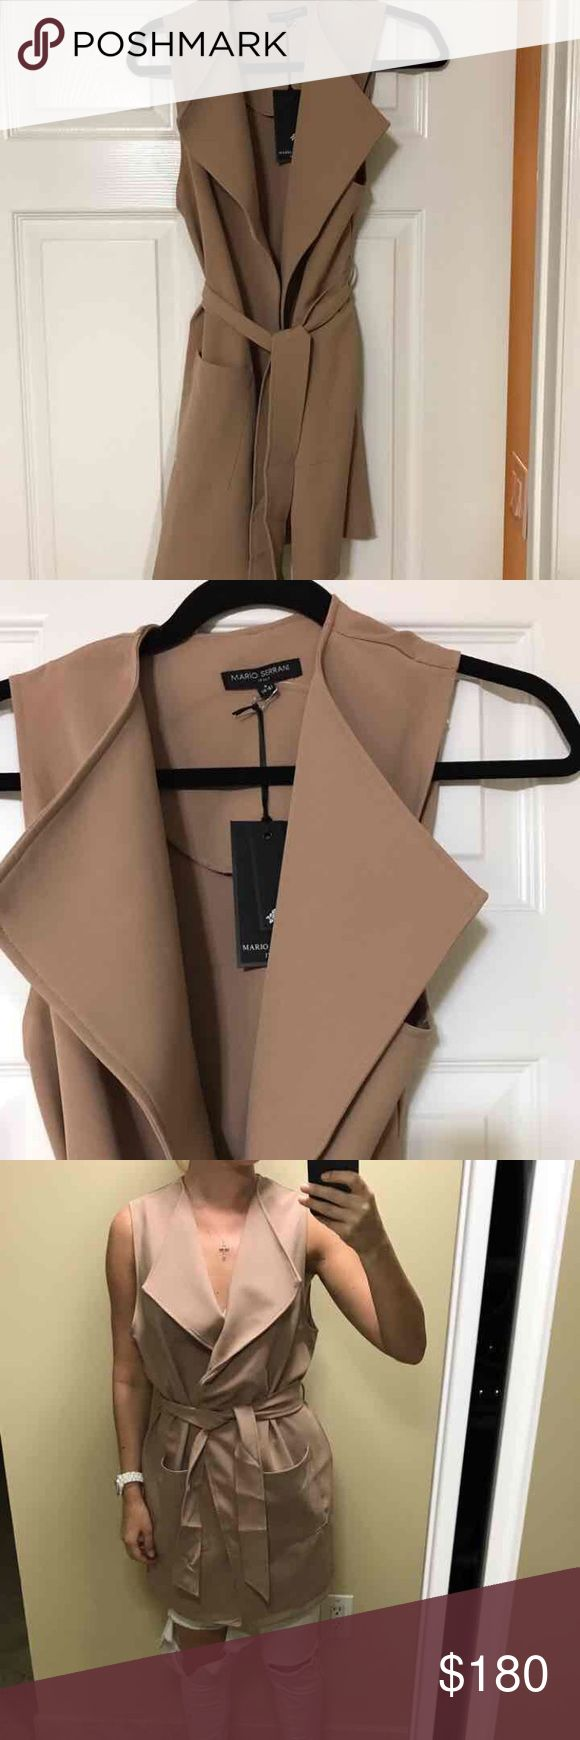 Nude vest Brand new . size M Jackets & Coats Vests